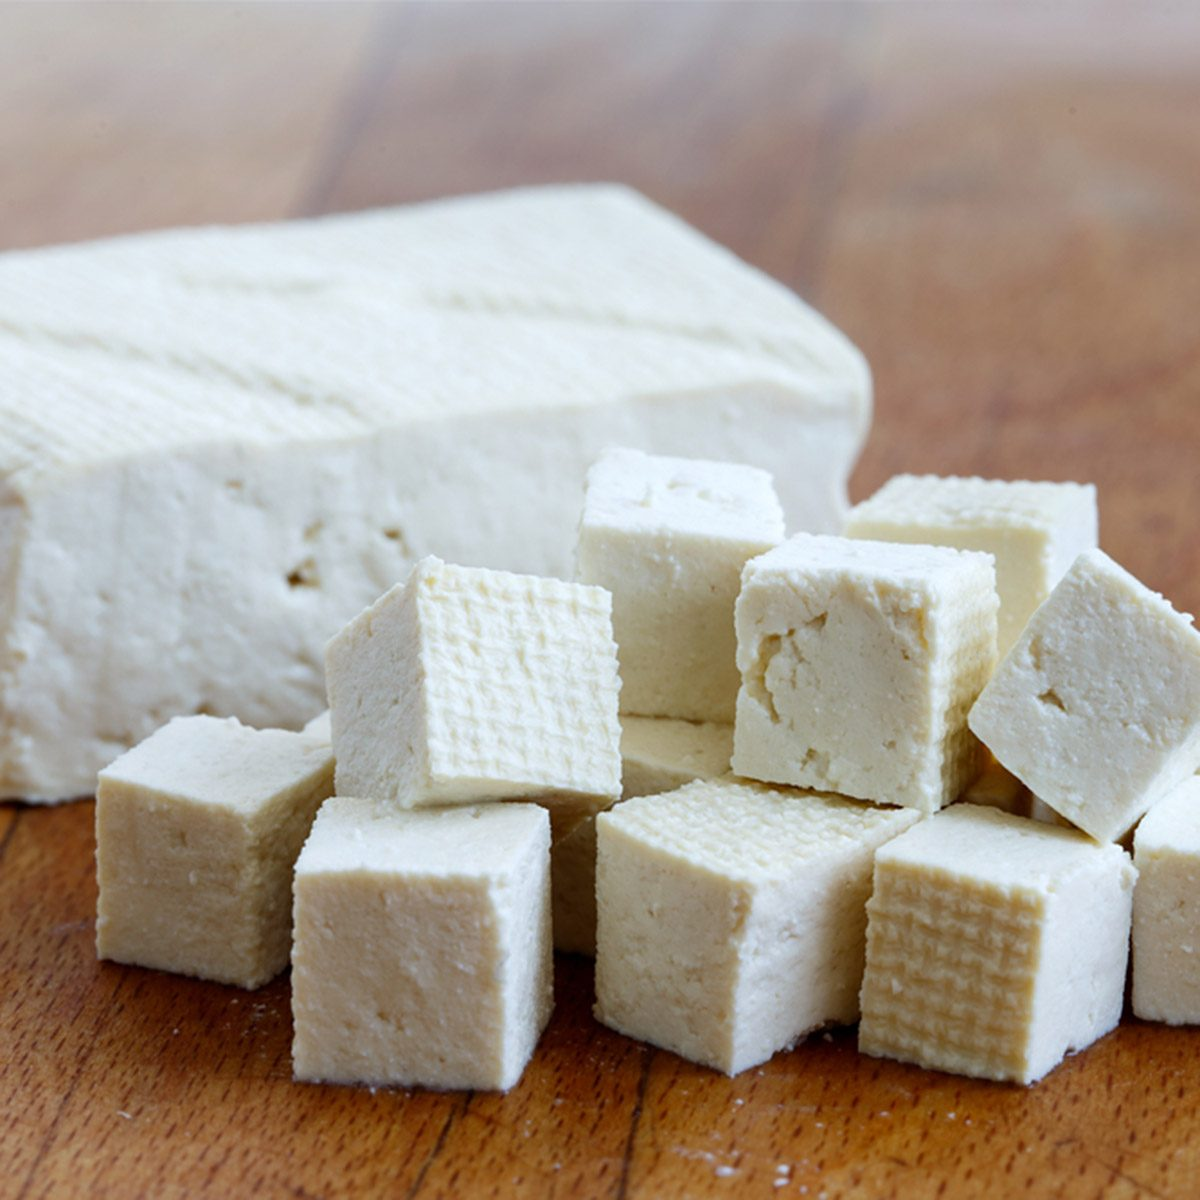 Single block of white tofu with cut tofu cubes on wooden chopping board.